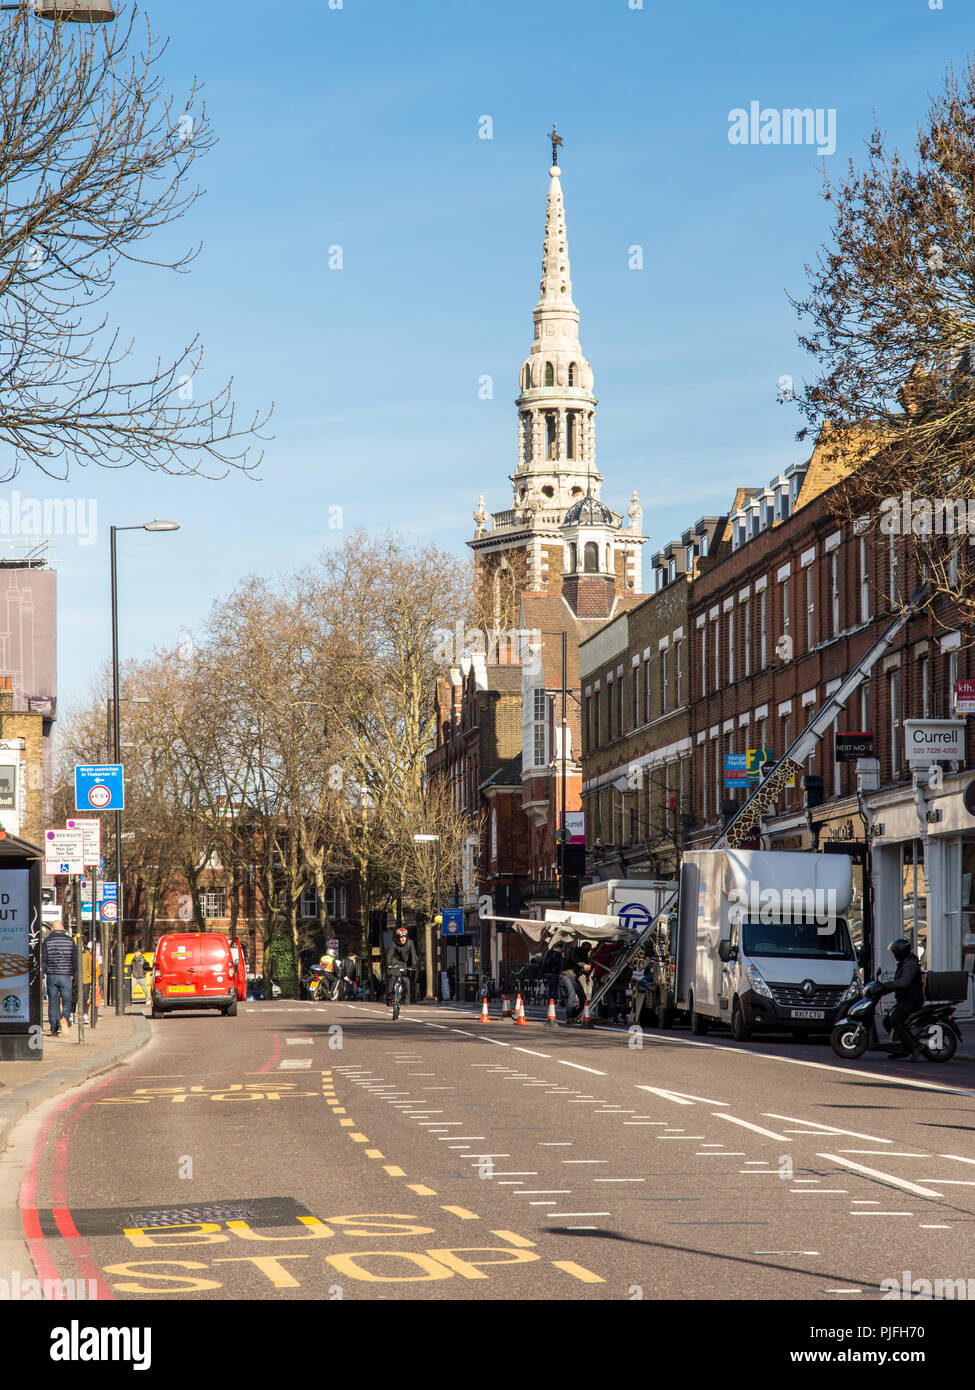 London, England, UK - February 12, 2018: Deliveries are made to shops and houses along the main Upper Street through Islington, London, with the spire - Stock Image